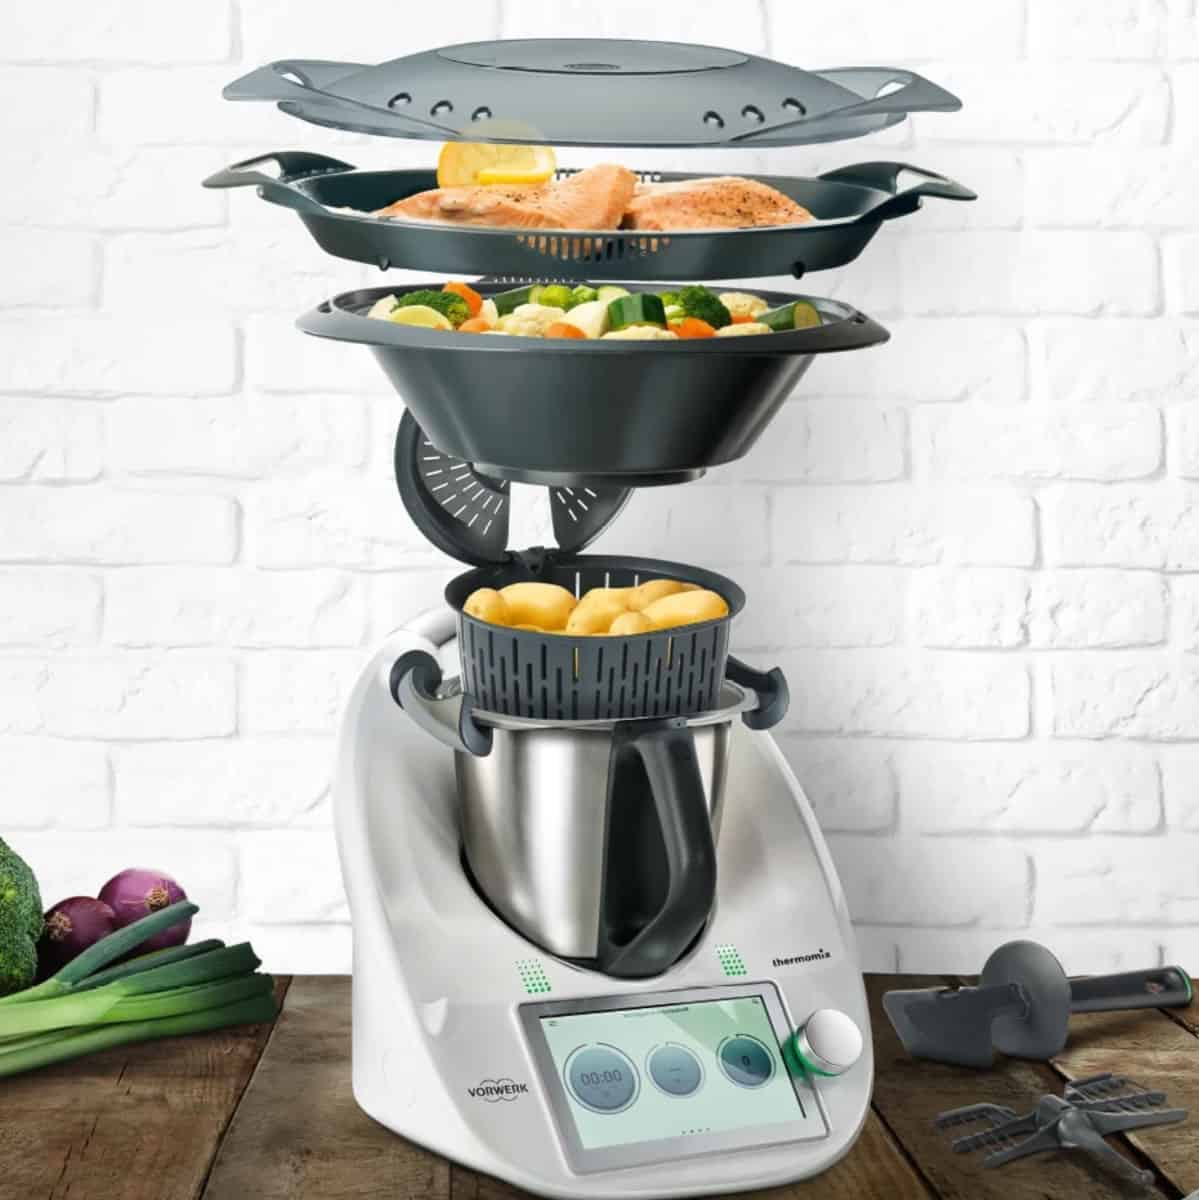 An image showing a Thermomix 6 model with the simmer basket and Varoma.